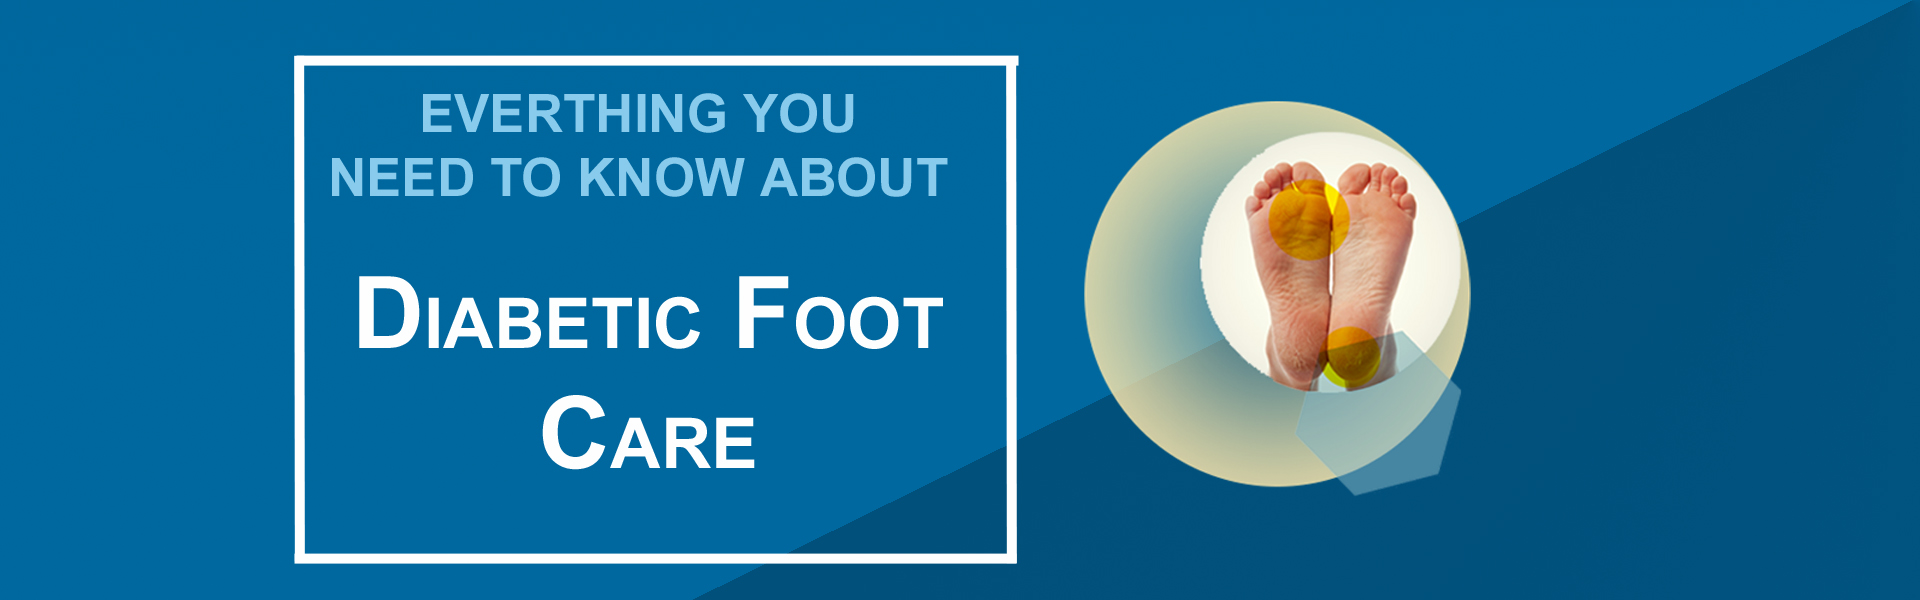 Diabetic Foot Clinic in Bhopal, India